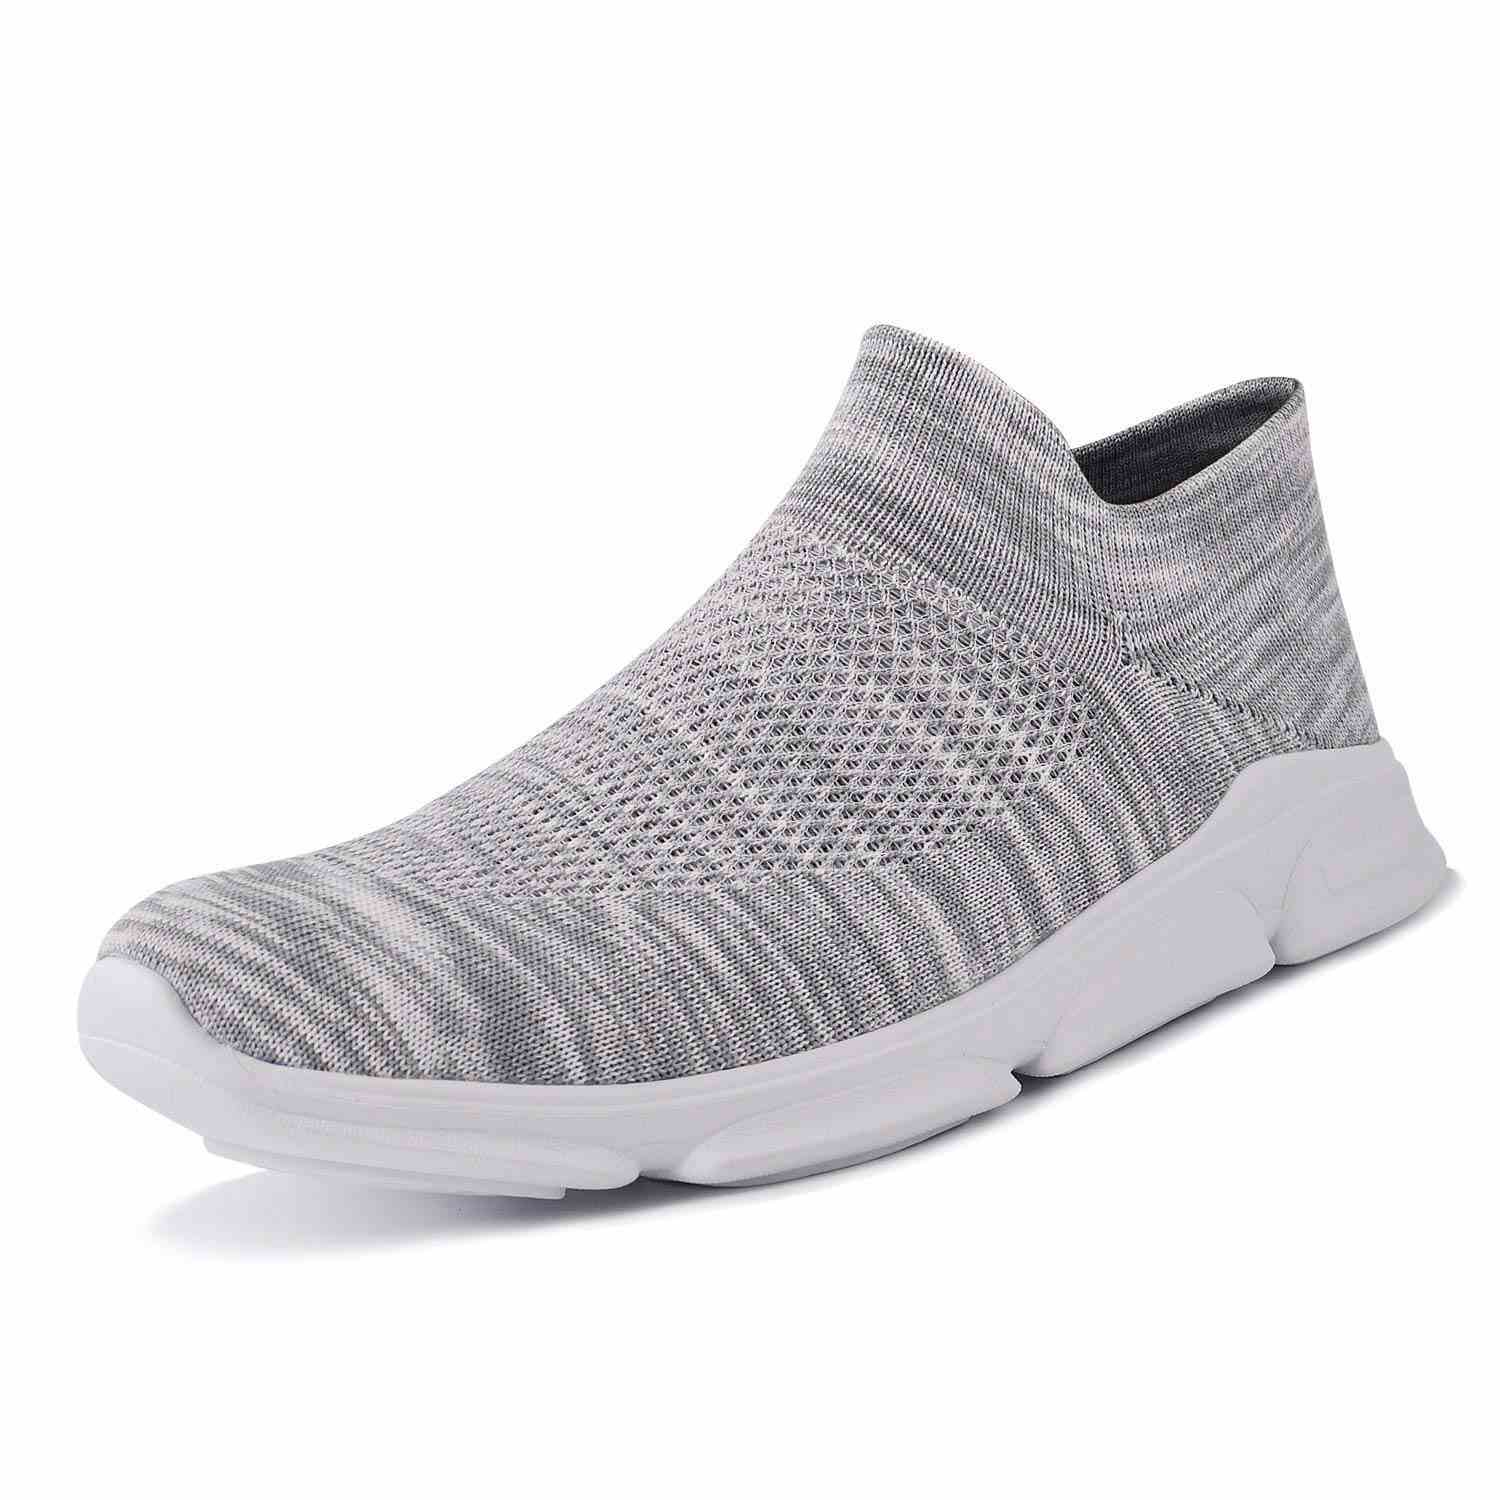 Mens and Womens Walking Shoes Lightweight Mesh Slip-on Running Sneakers